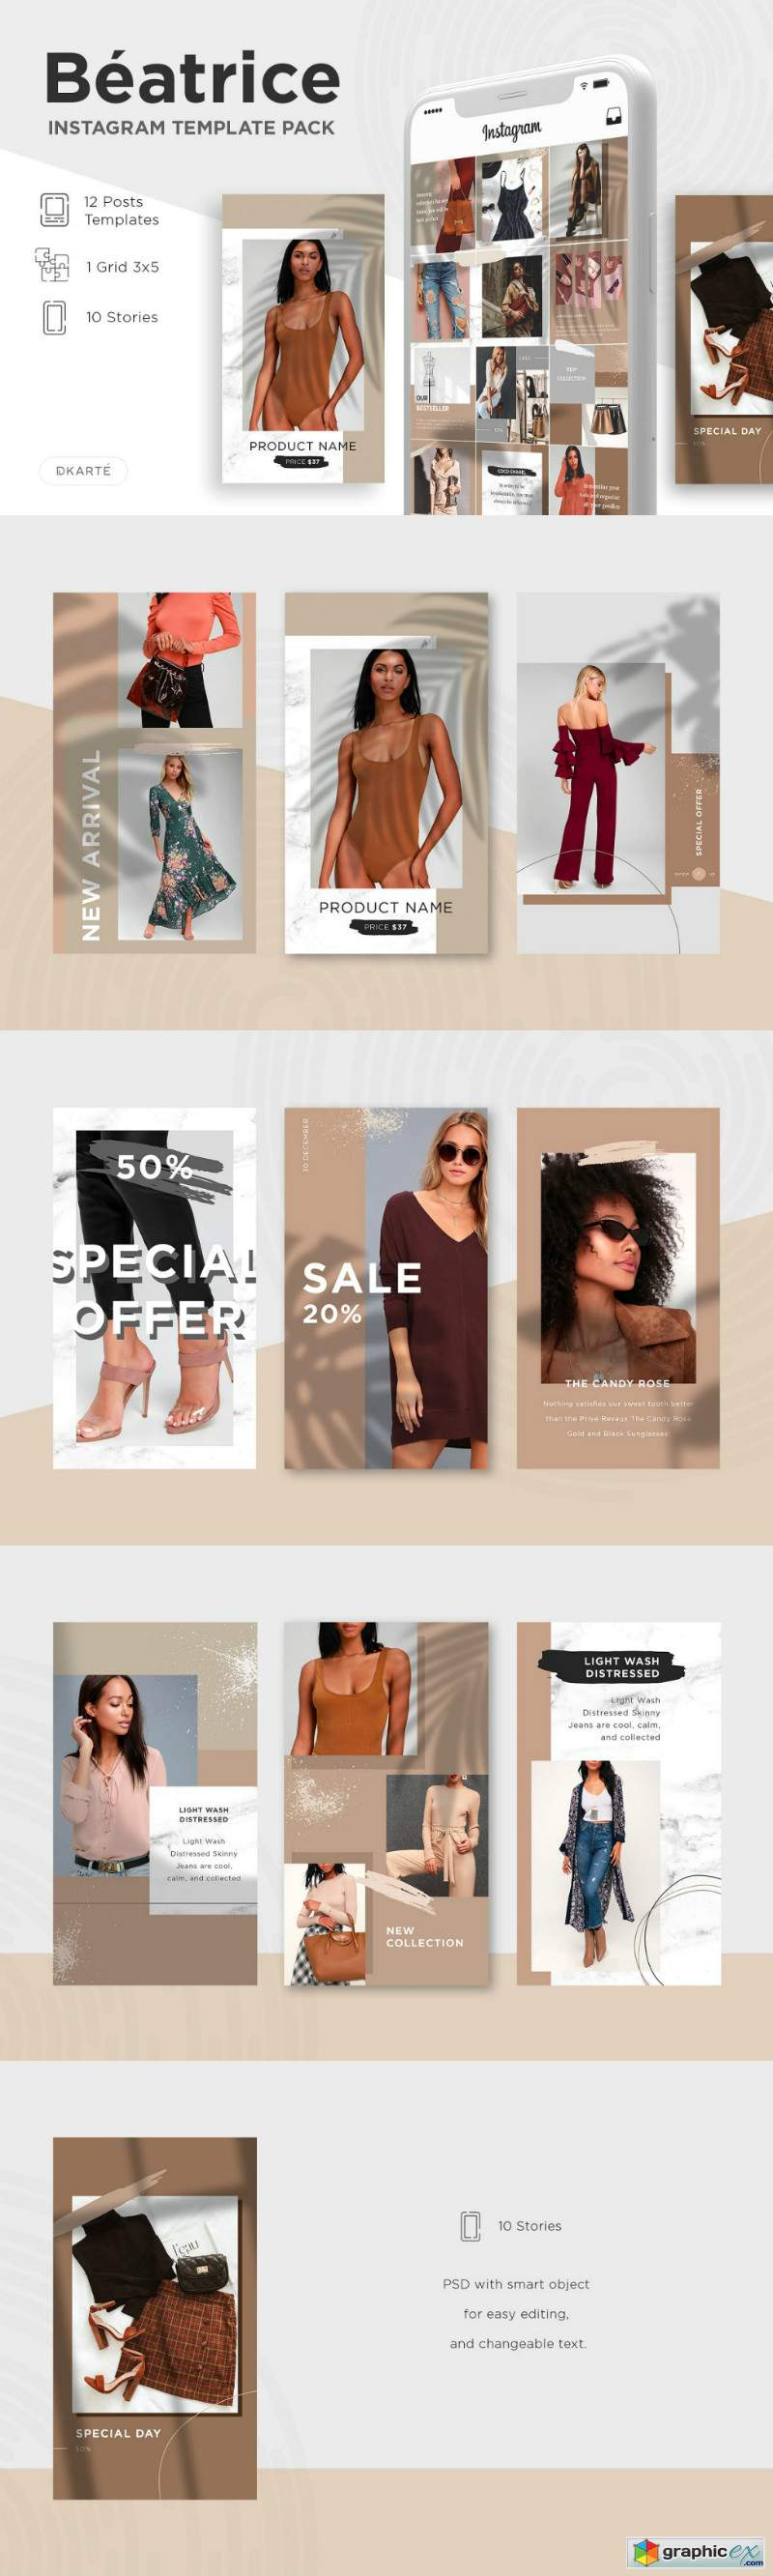 Beatrice Instagram Template Pack